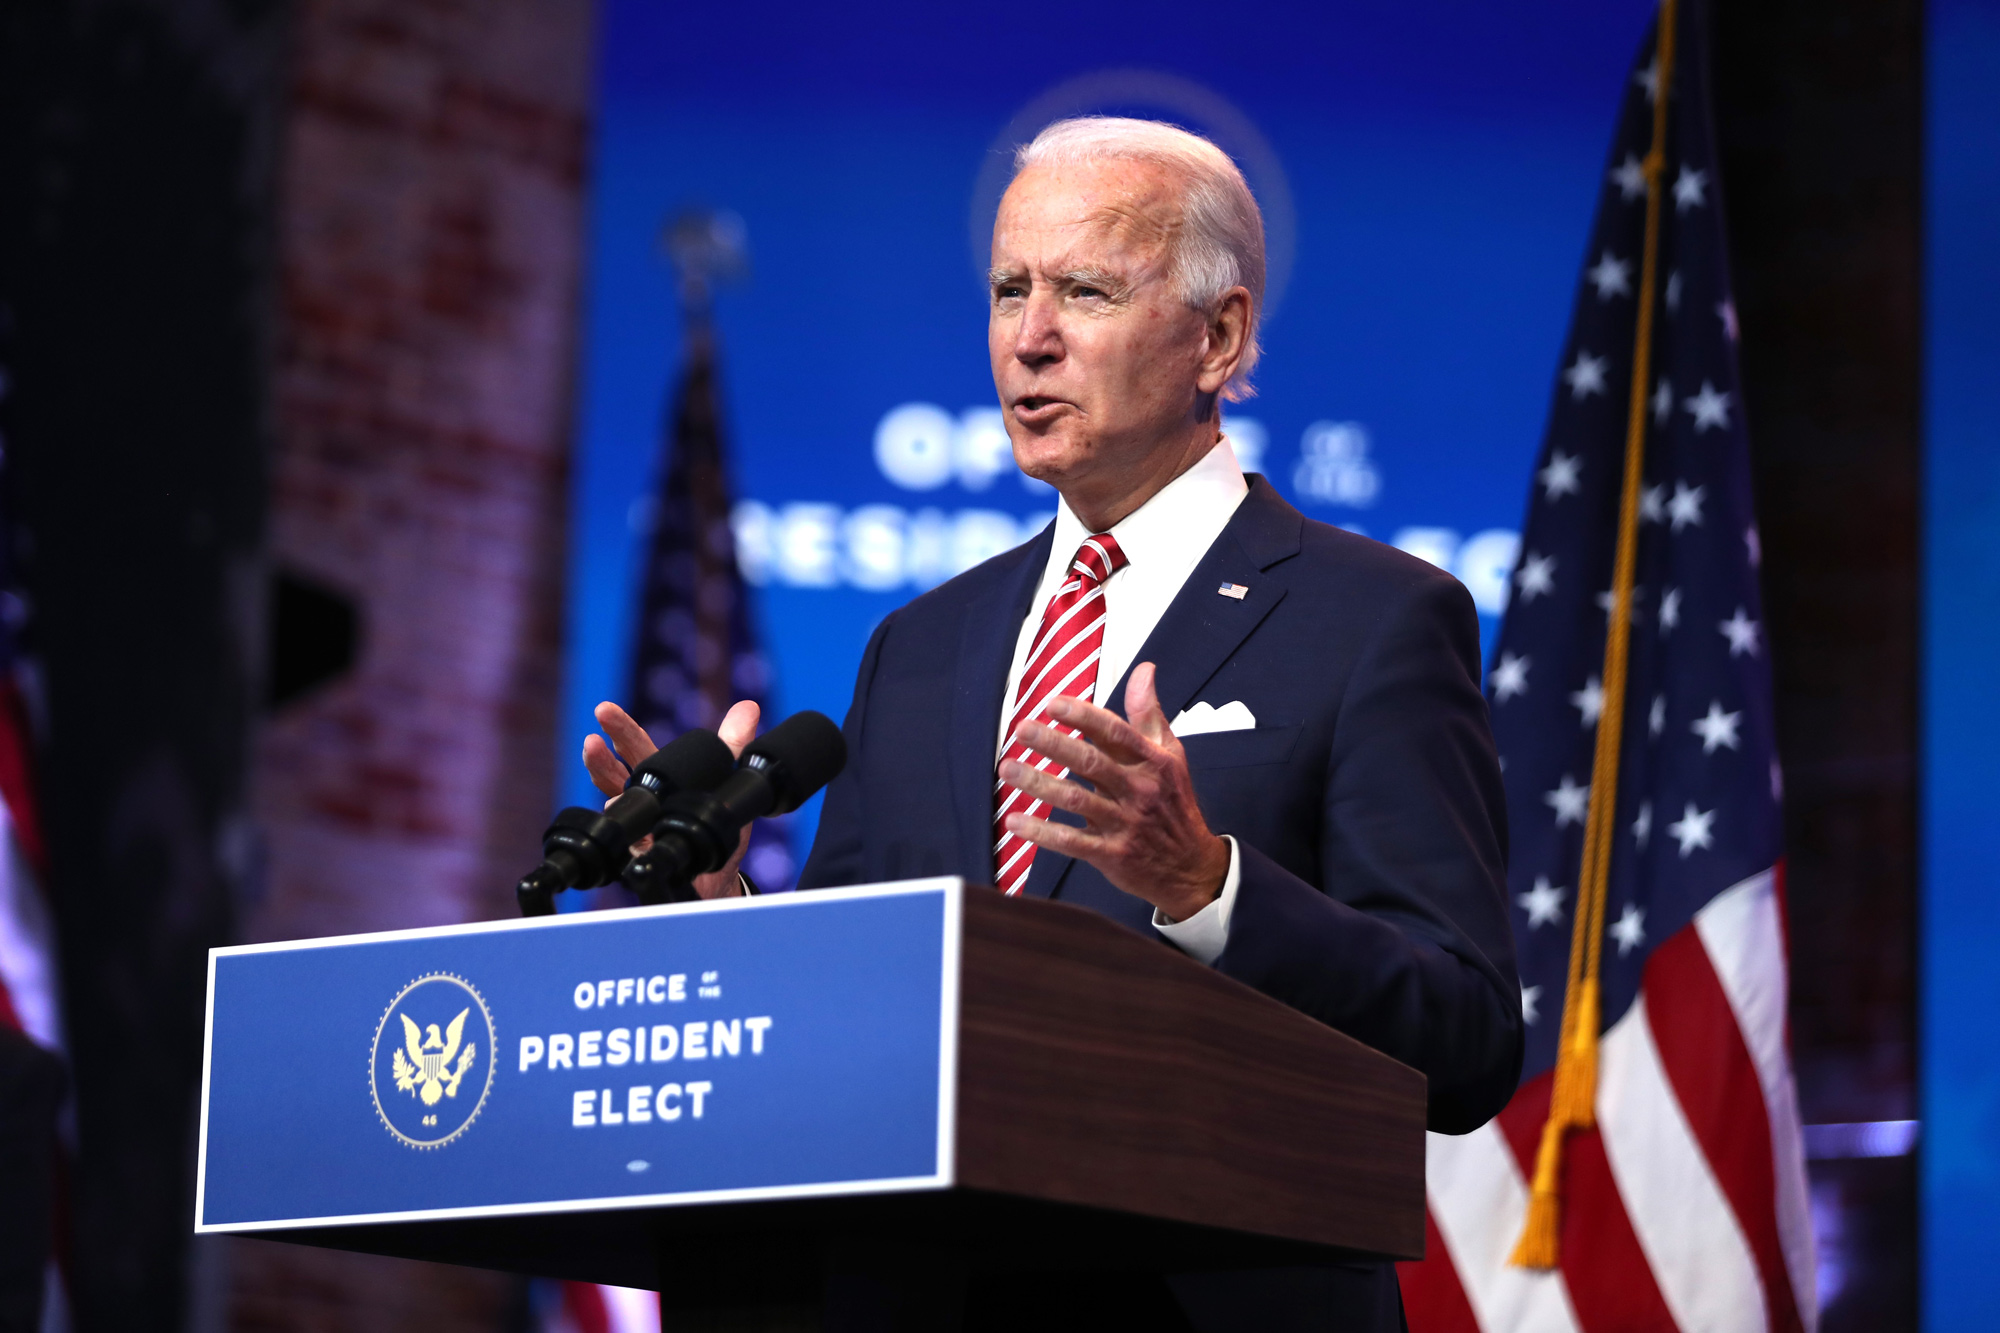 President-elect Joe Biden delivers remarks about the U.S. economy during a press briefing at the Queen Theater on November 16 in Wilmington, Delaware.